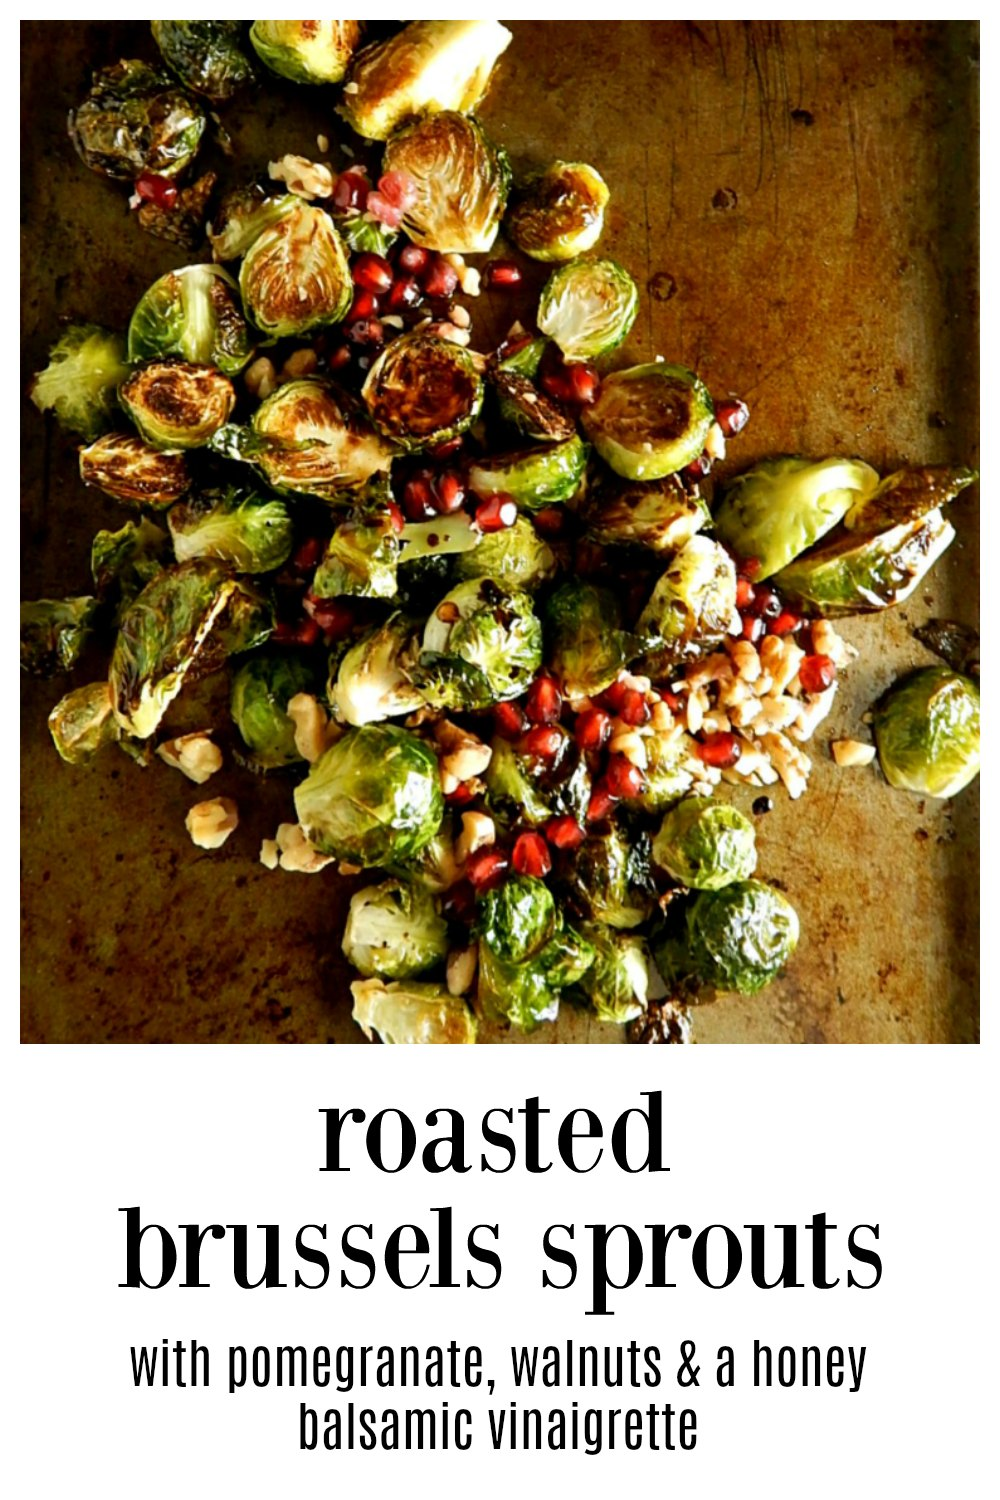 Roasted Brussels with Pomegranate & Walnuts; perfect for a holiday & a gorgeous play of flavor and texture. Easy to make and if you want to, level up with a simple 4 ingredient White Balsamic Honey Vinaigrette. #RoastedBrusselsSprouts #RoastedBrusselsWalnutsPomegranates #RoastedBrusselsWhiteBalsamicVinaigrette.